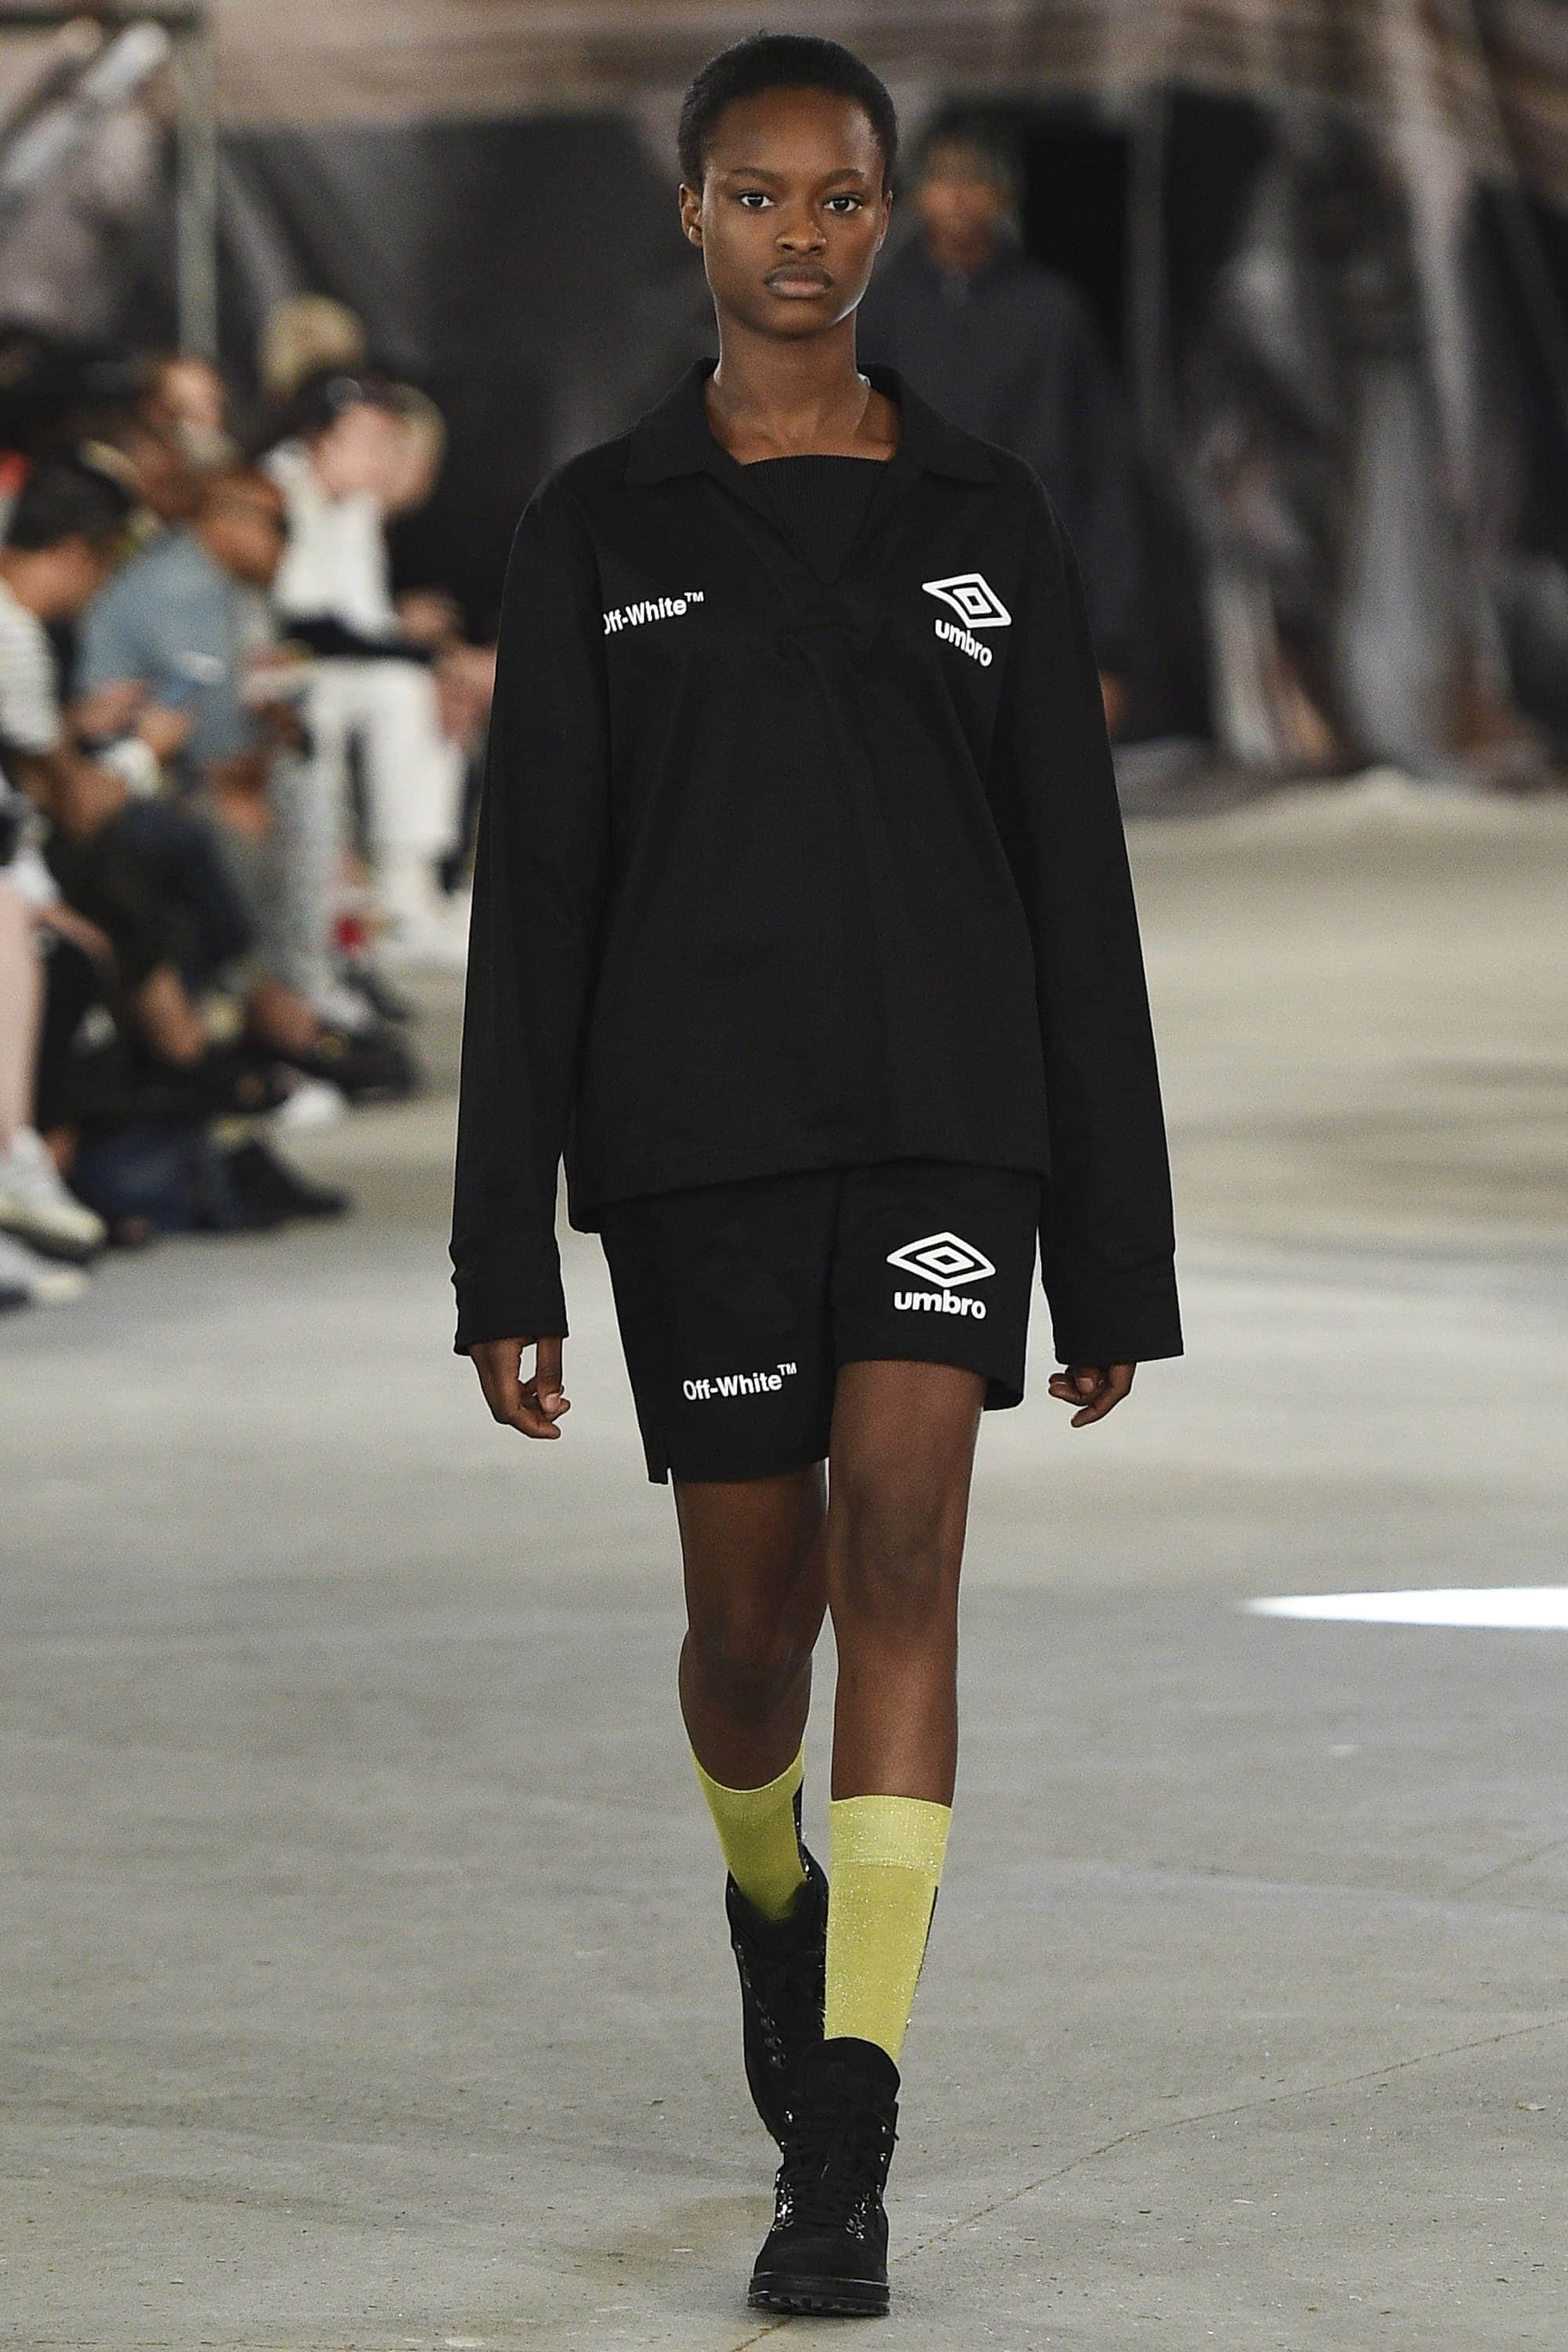 Moodboard, Style, Fashion, Fashion Inspiration, Fall Fashion, Spring Summer 2018, Styleboard, Rewardstyle,, Leinen, Trends, White, Neutrals, Catwalk, Runway, Revivals, Classics, Trend, Trend Update, Off-White, Umbro, Virgil Abloh